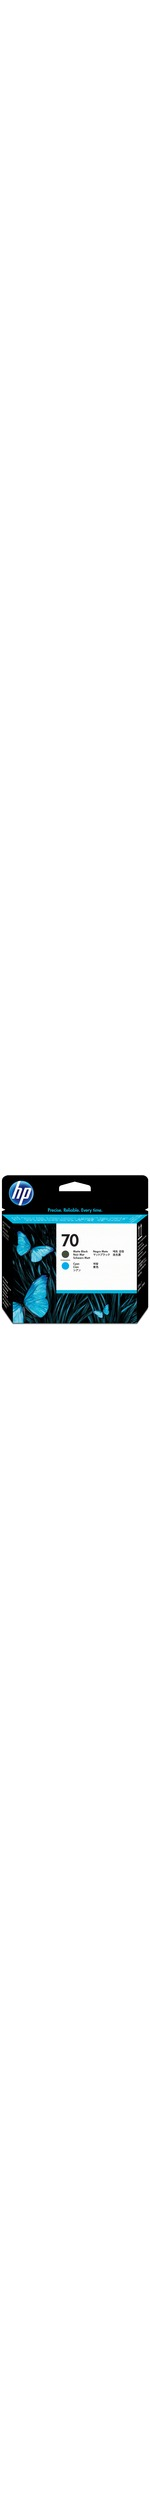 HP 70 Matte Black and Cyan Printhead - Matte Black, Cyan - Inkjet